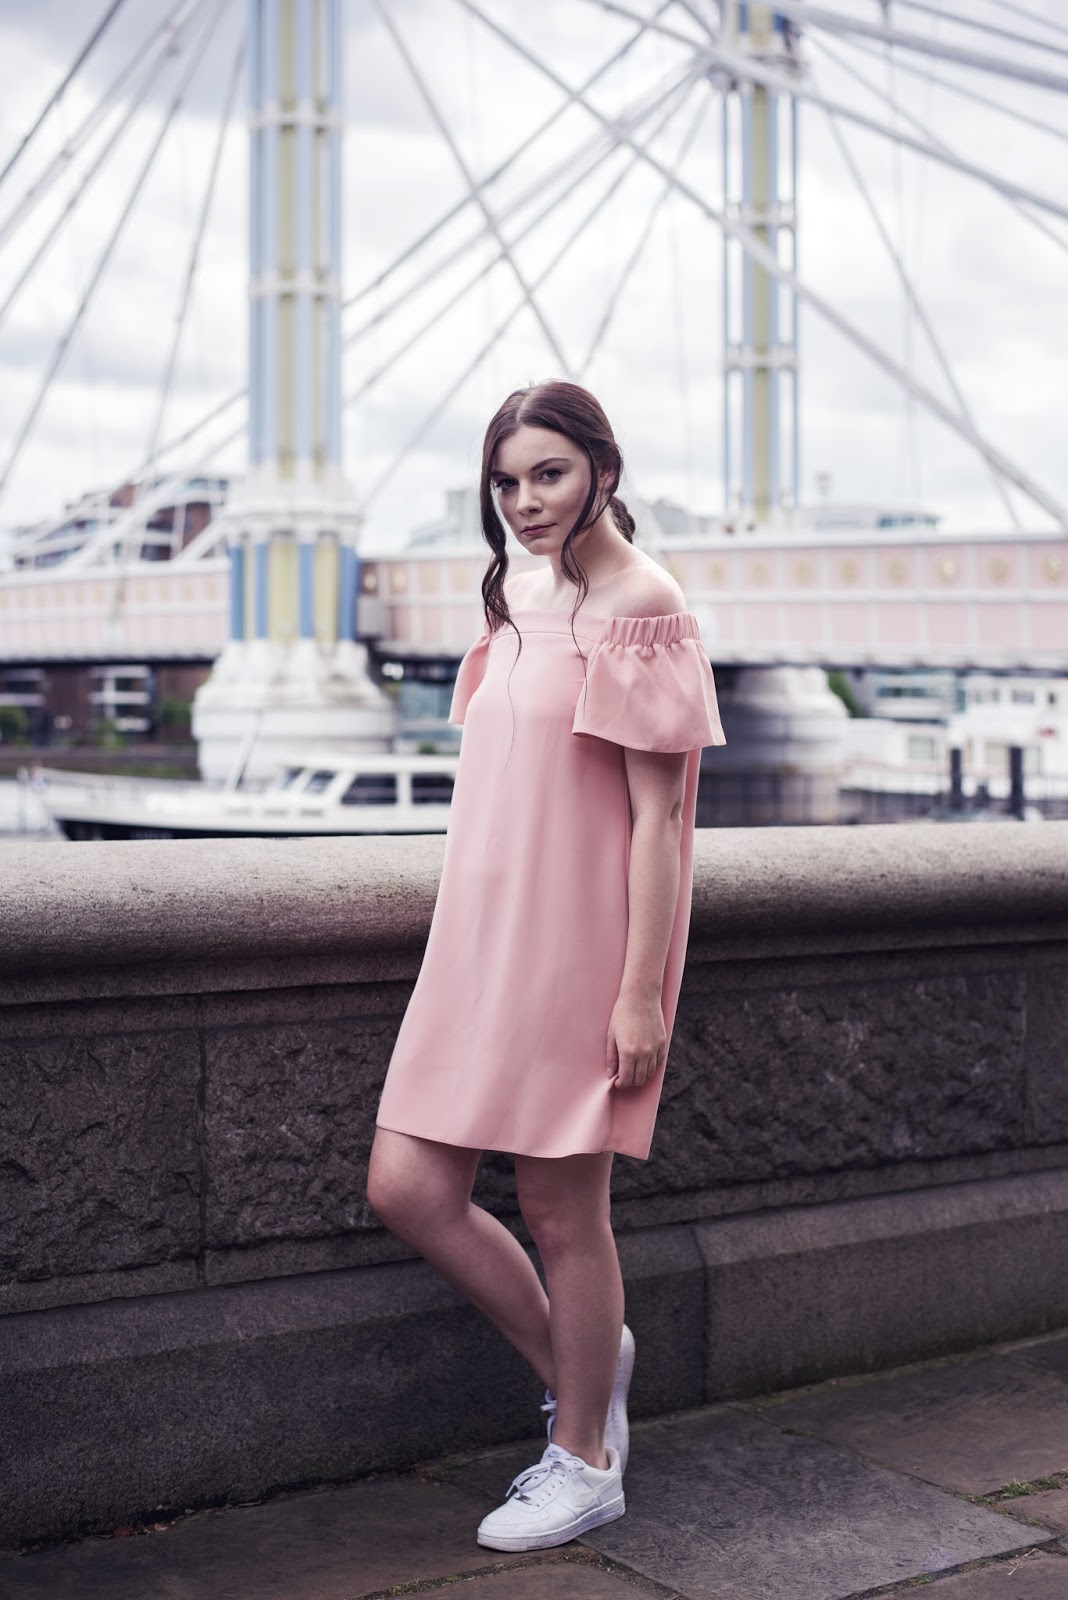 Pink Topshop Bardot Dress and Nike Air Force 1 | Albert Bridge Chelsea London | Rose Kiara Peaches